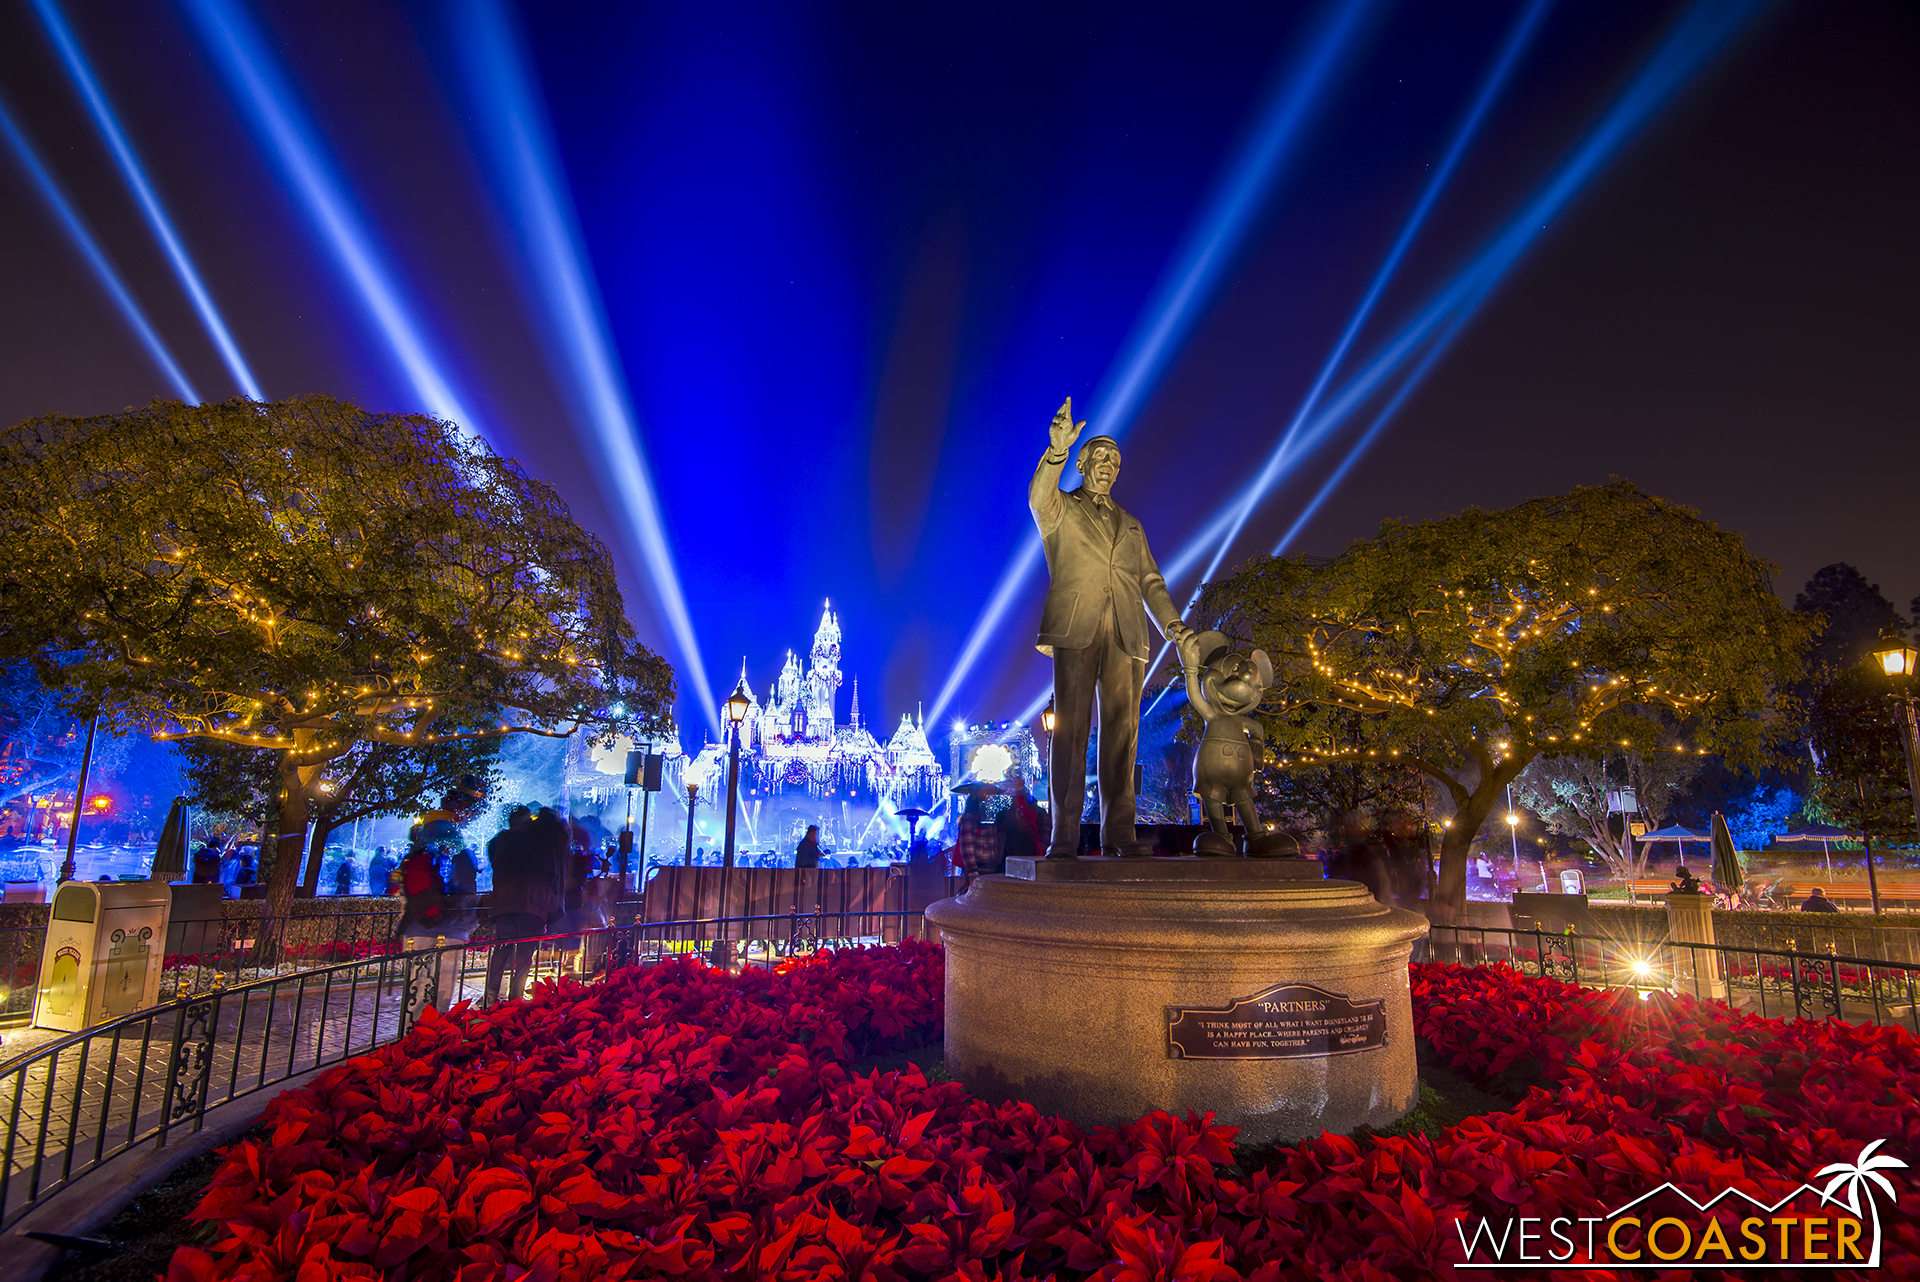 New Year's Eve is the only night of the year when Disneyland is open past midnight.